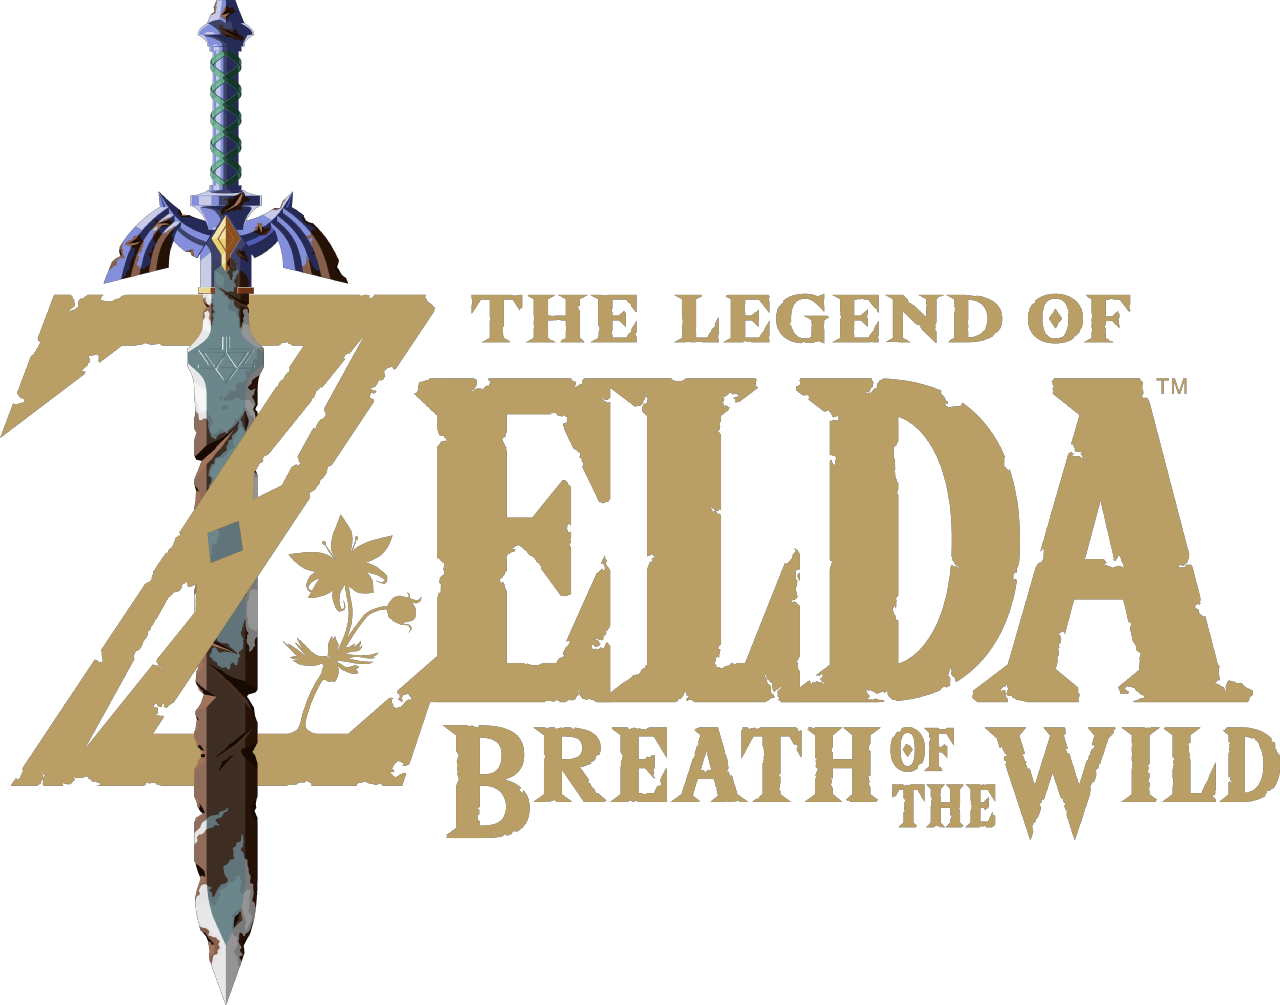 Resultado de imagem para the legend of zelda breath of the wild logo